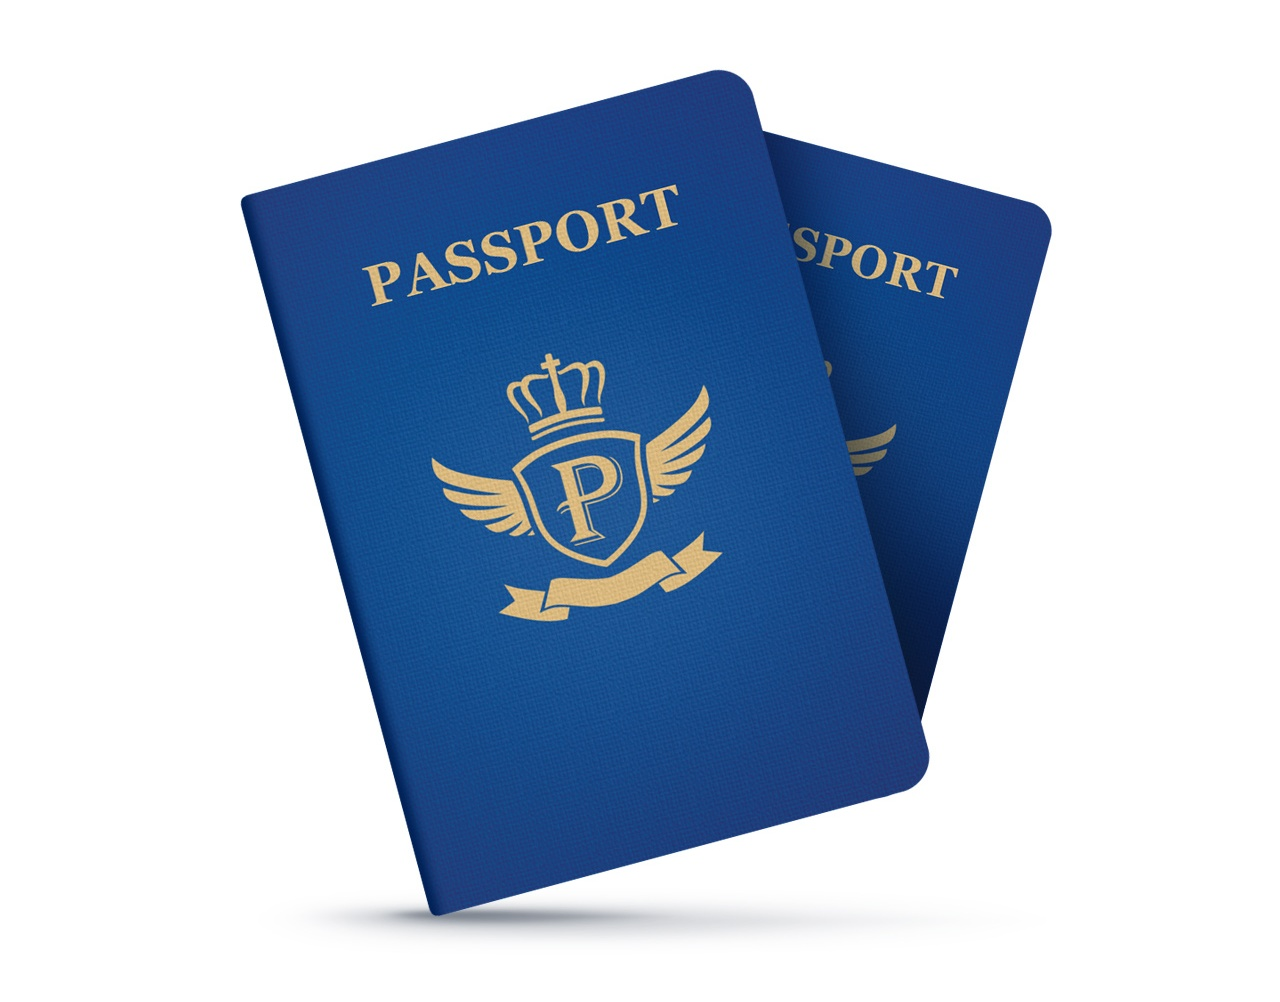 jpg library download Free cliparts download clip. Passport clipart